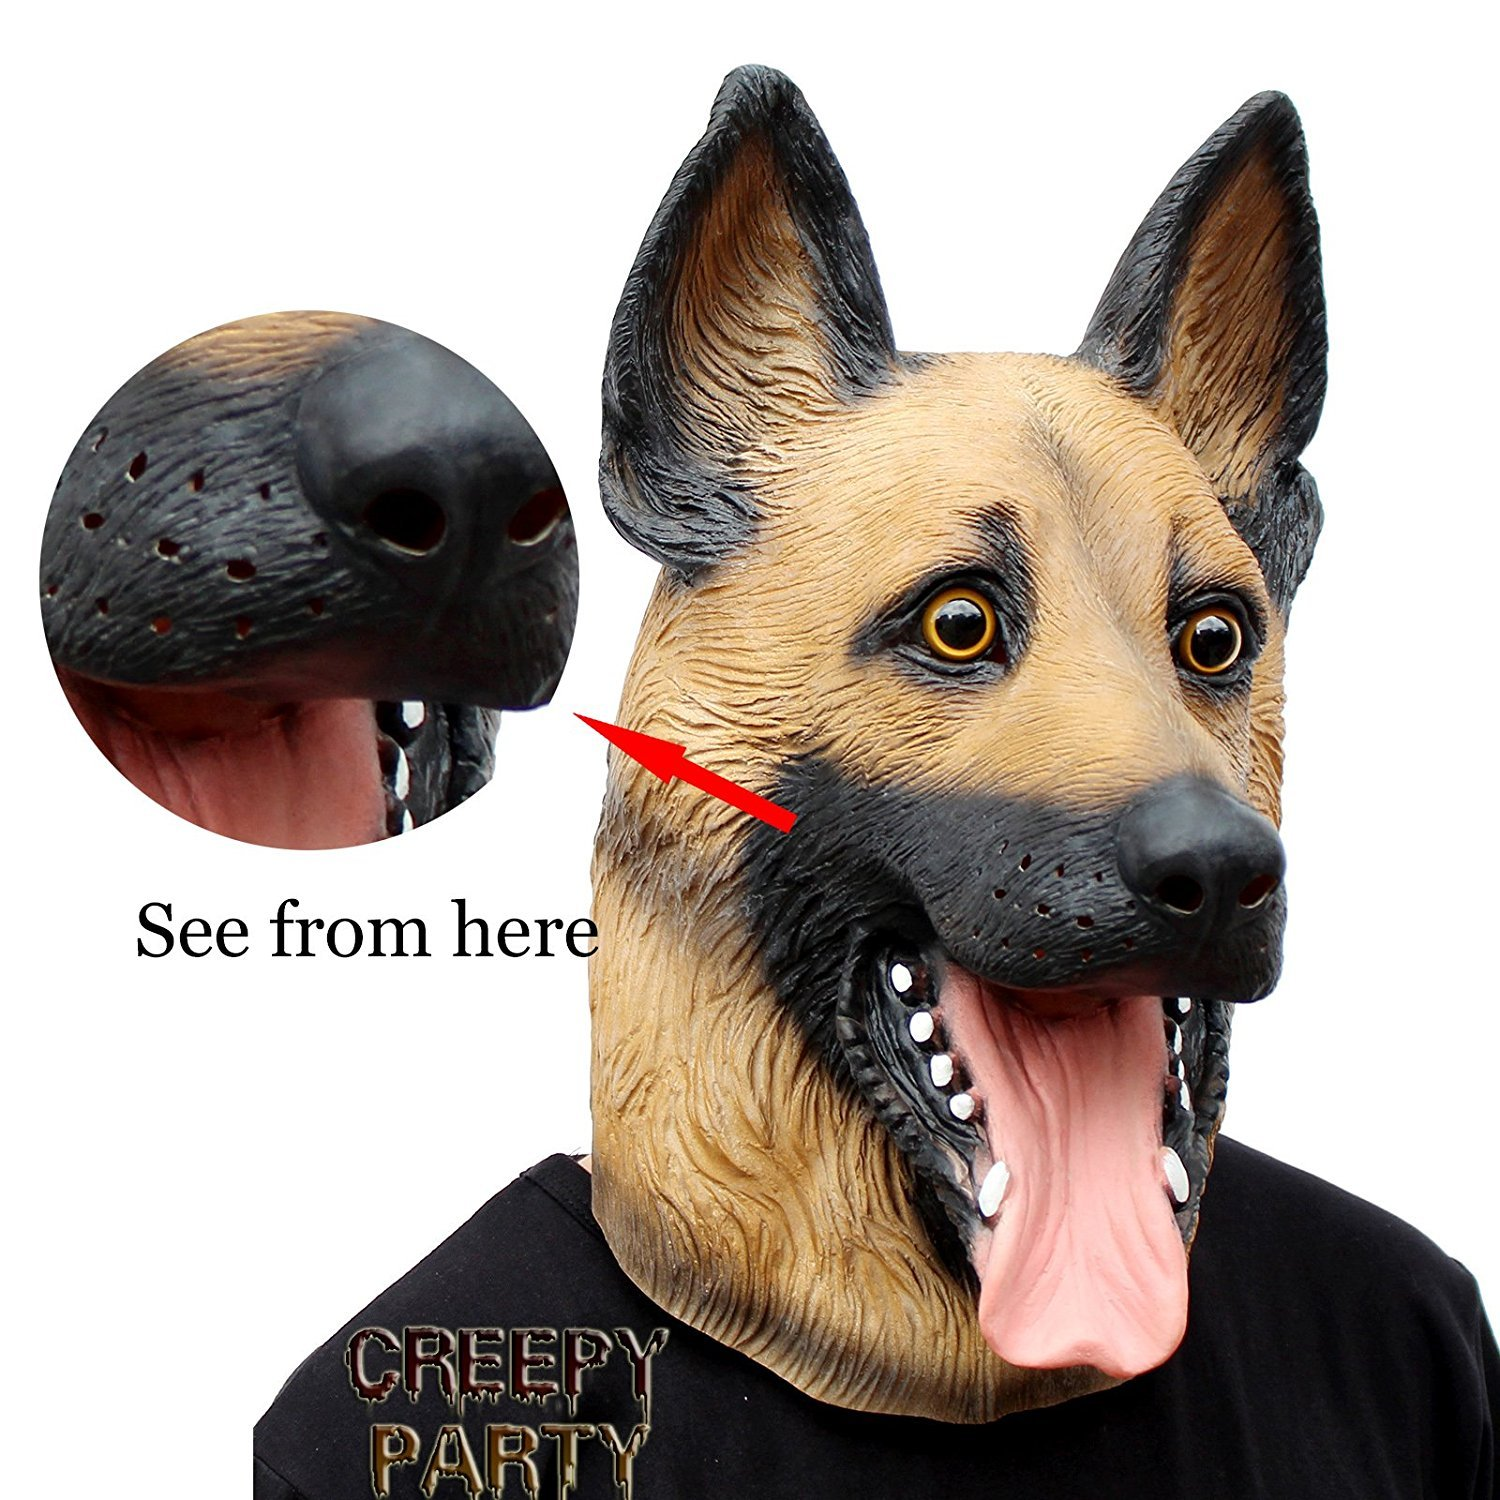 CreepyParty Novelty Halloween Costume Super Bowl Underdog Party Latex Dog Head Mask (German Shepherd) Seaton